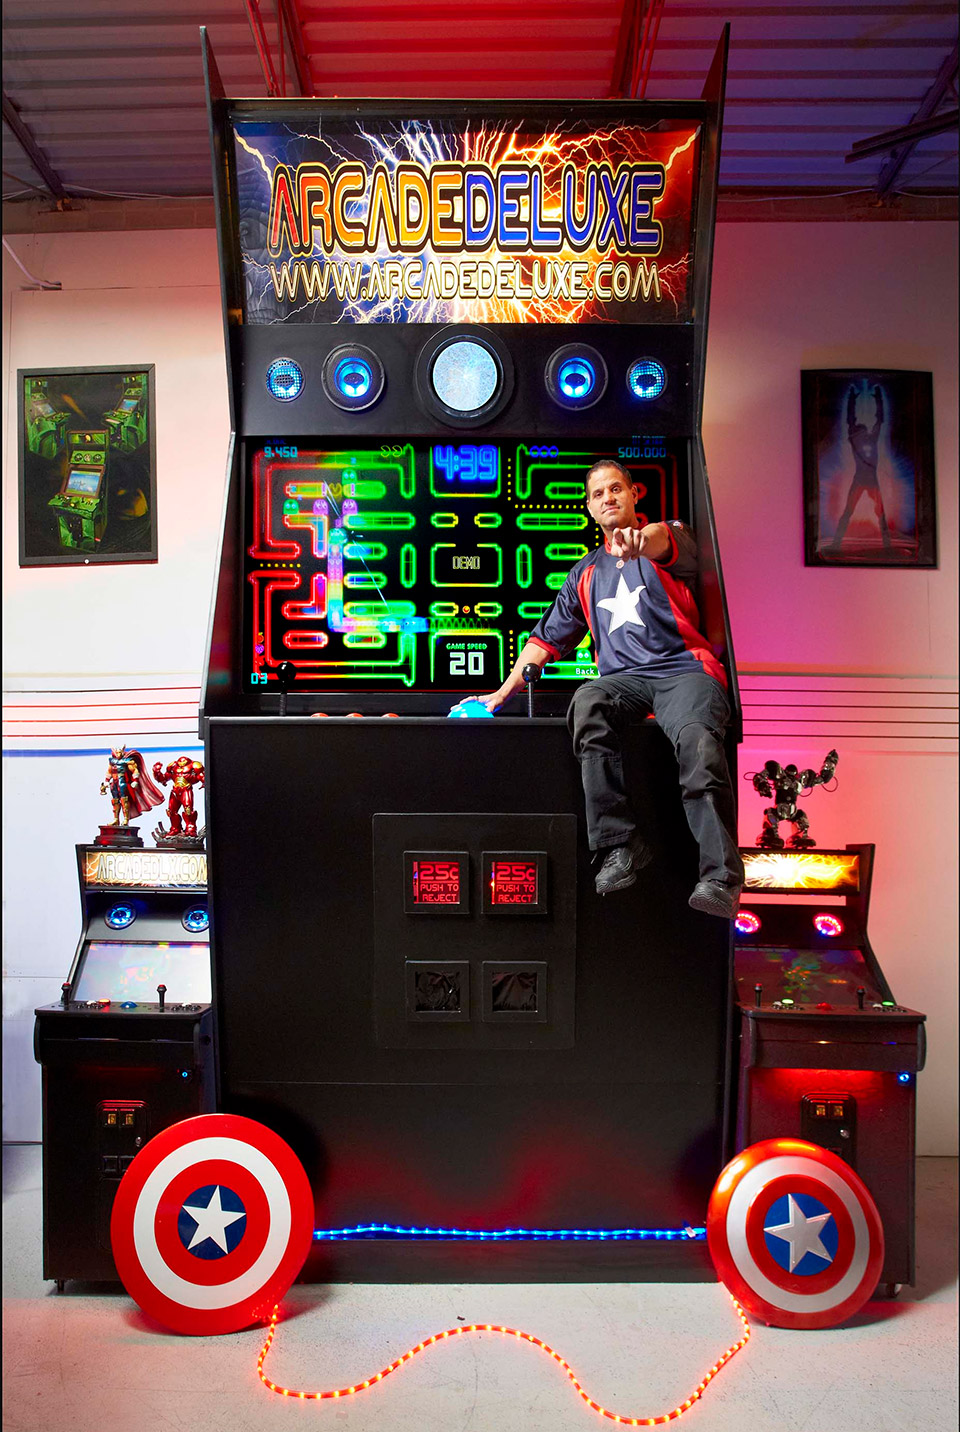 World's Largest Arcade Machine